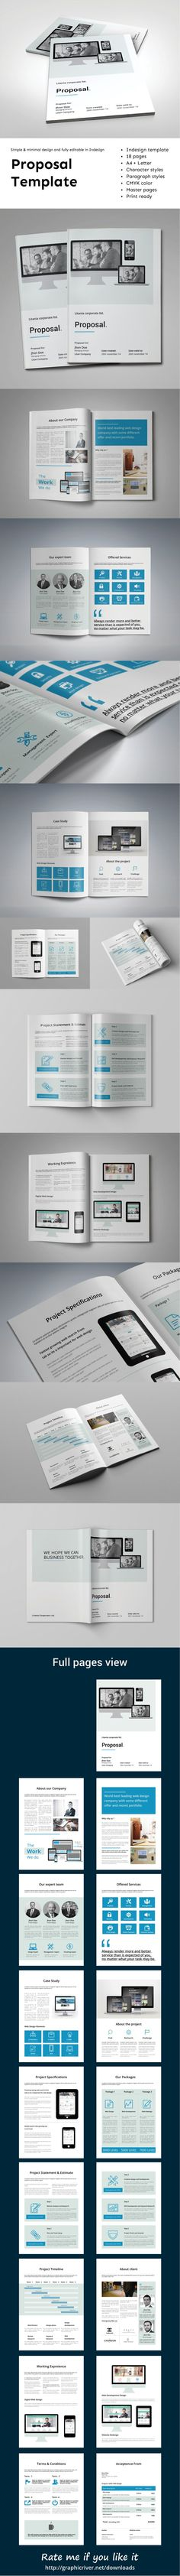 Project Proposal InDesign Template | Download: http://graphicriver ...